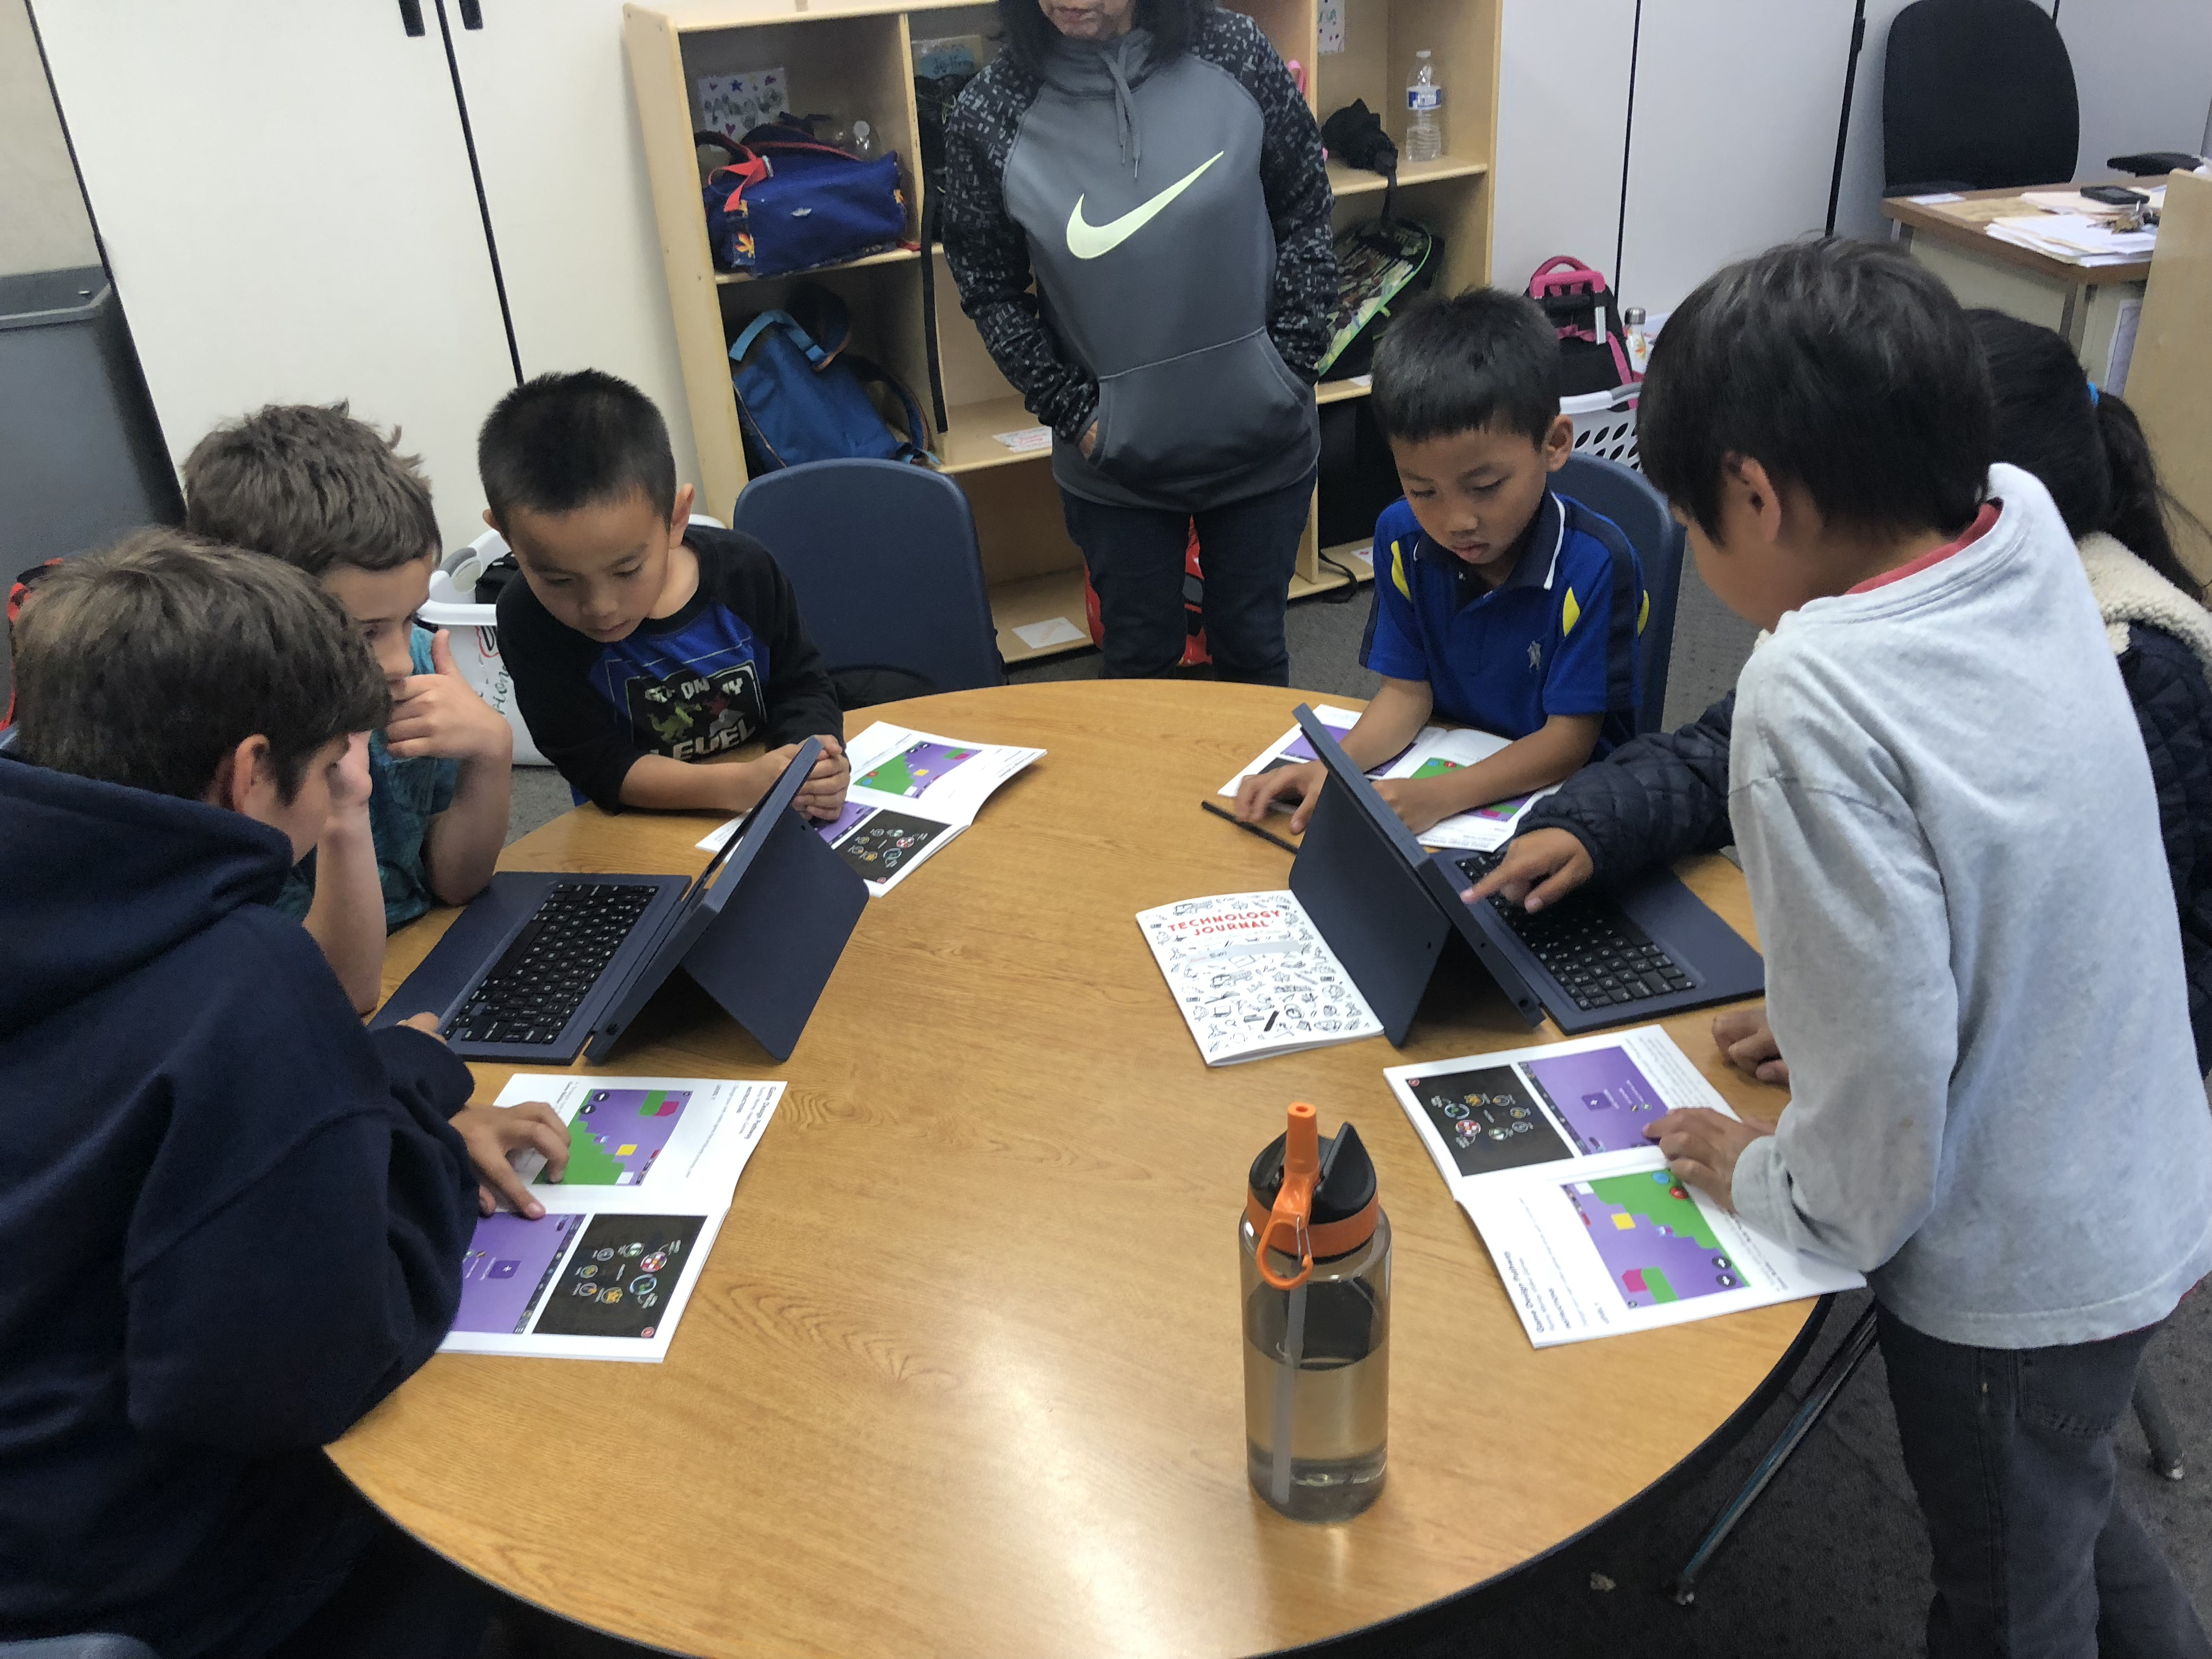 Students explore and learn while engaging with a technology-integrated curriculum.